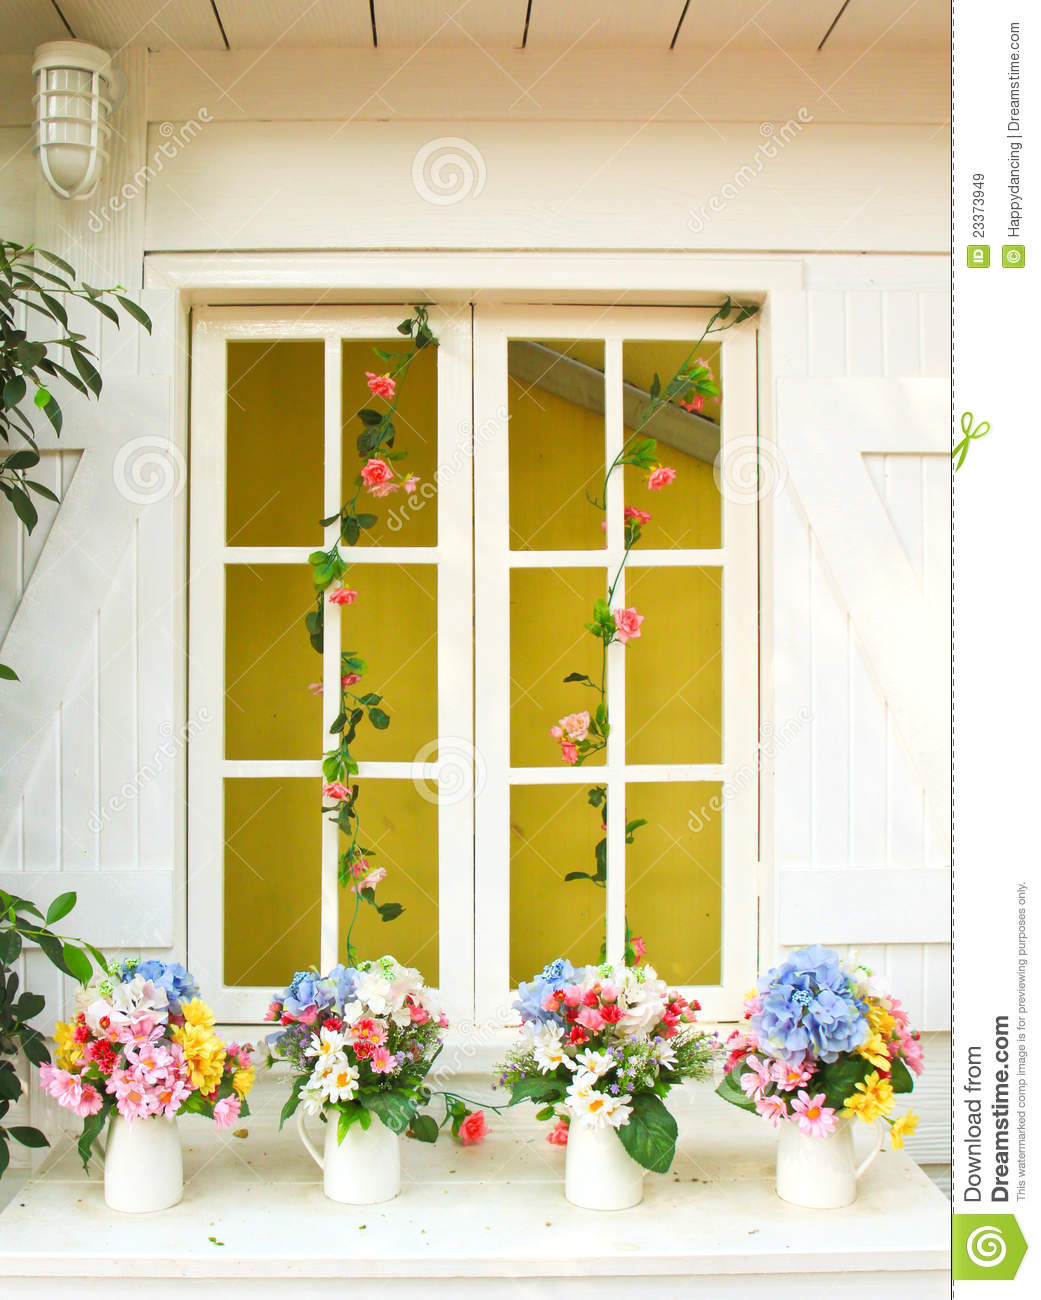 Decorated Flower On Window In Garden Stock Image